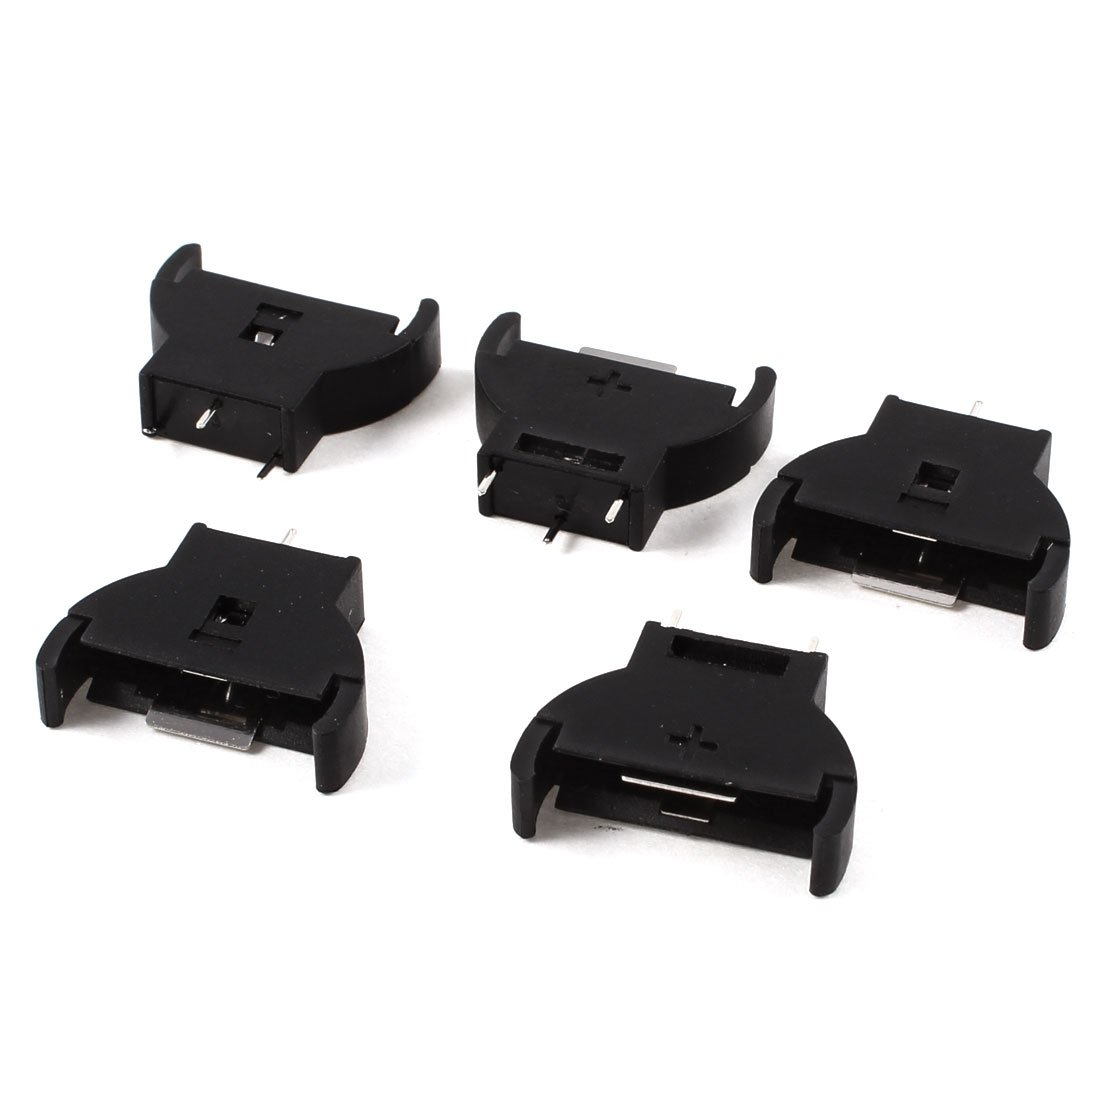 Brand New 5 Pcs Black Plastic CR2032 2032 3V Cell Coin Battery Socket Holder Case Battery Boxes 5pcs smd tab 20mm cr2032 2032 battery button cell holder coin cell retainer battery holder surface mount pcb